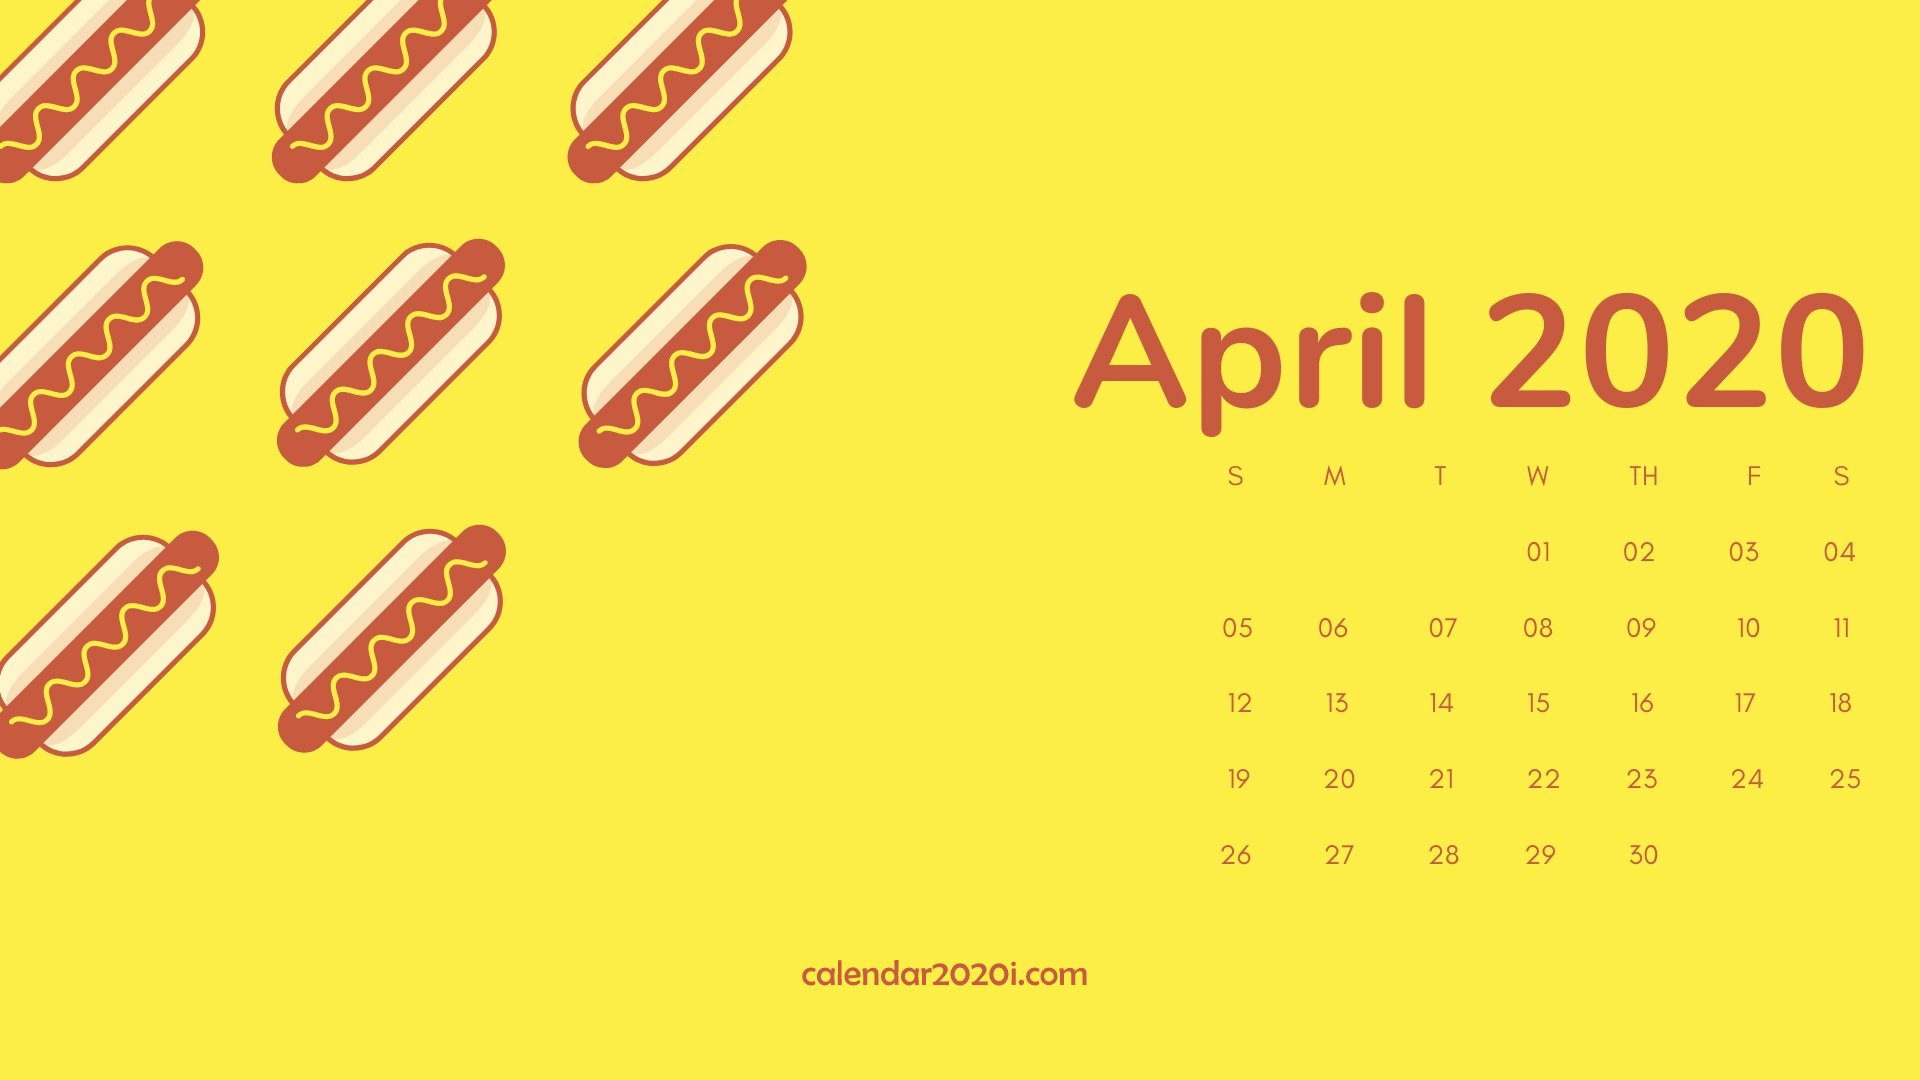 53] 2020 Calendar Phone Wallpapers on WallpaperSafari 1920x1080